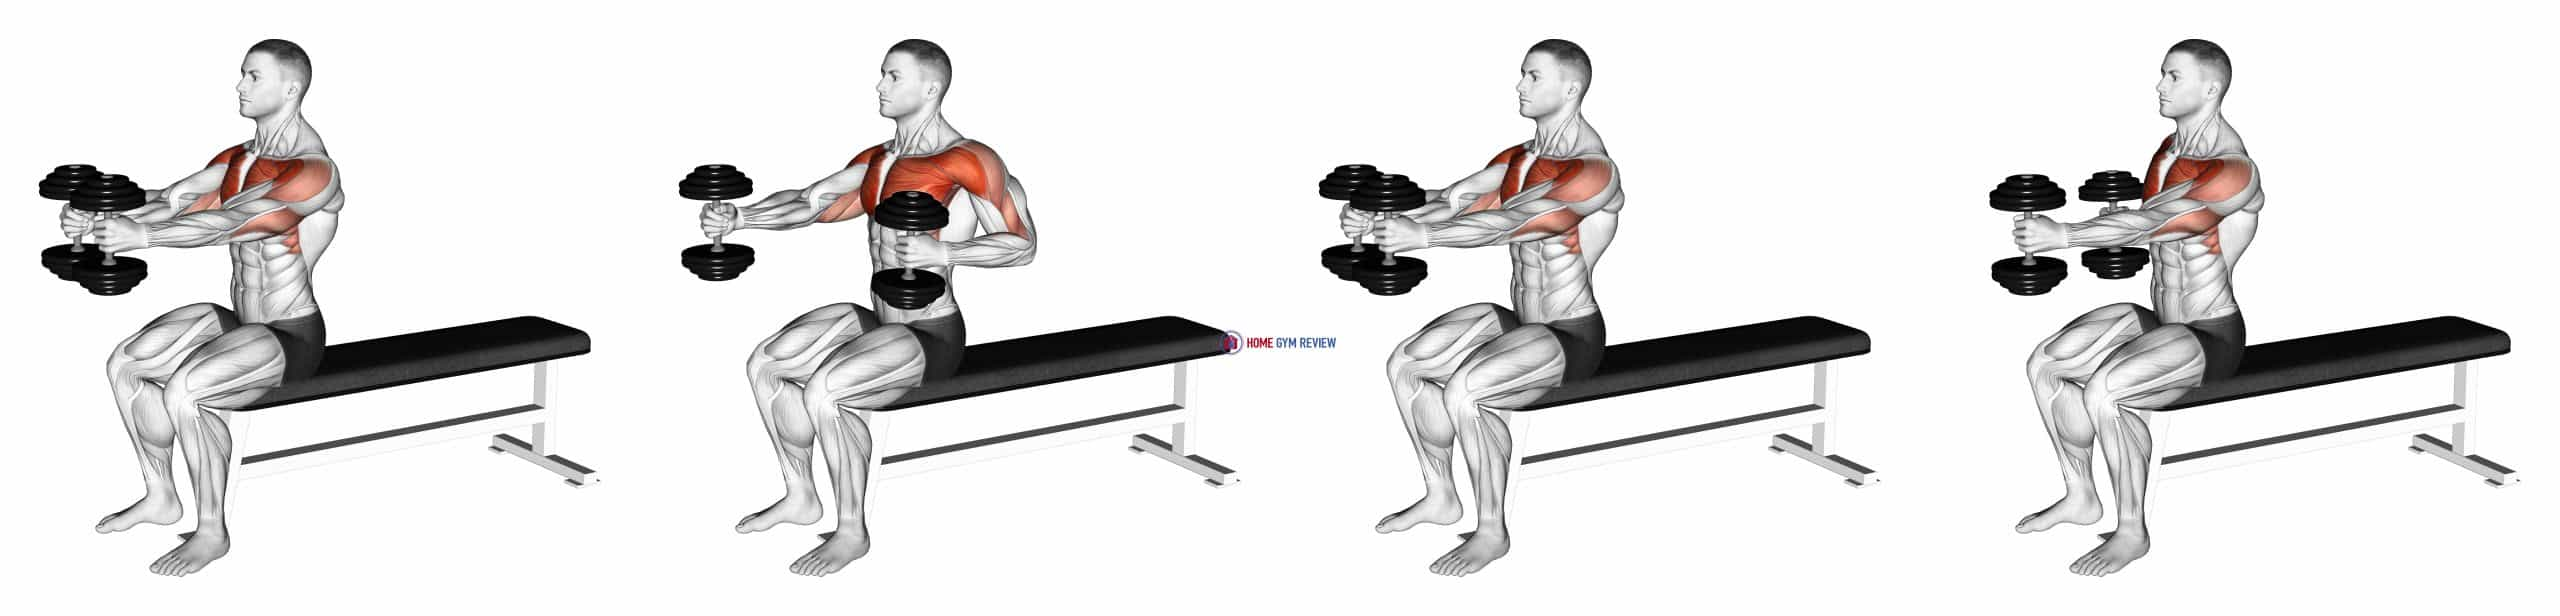 Dumbbell Seated Upright Alternate Squeeze Press